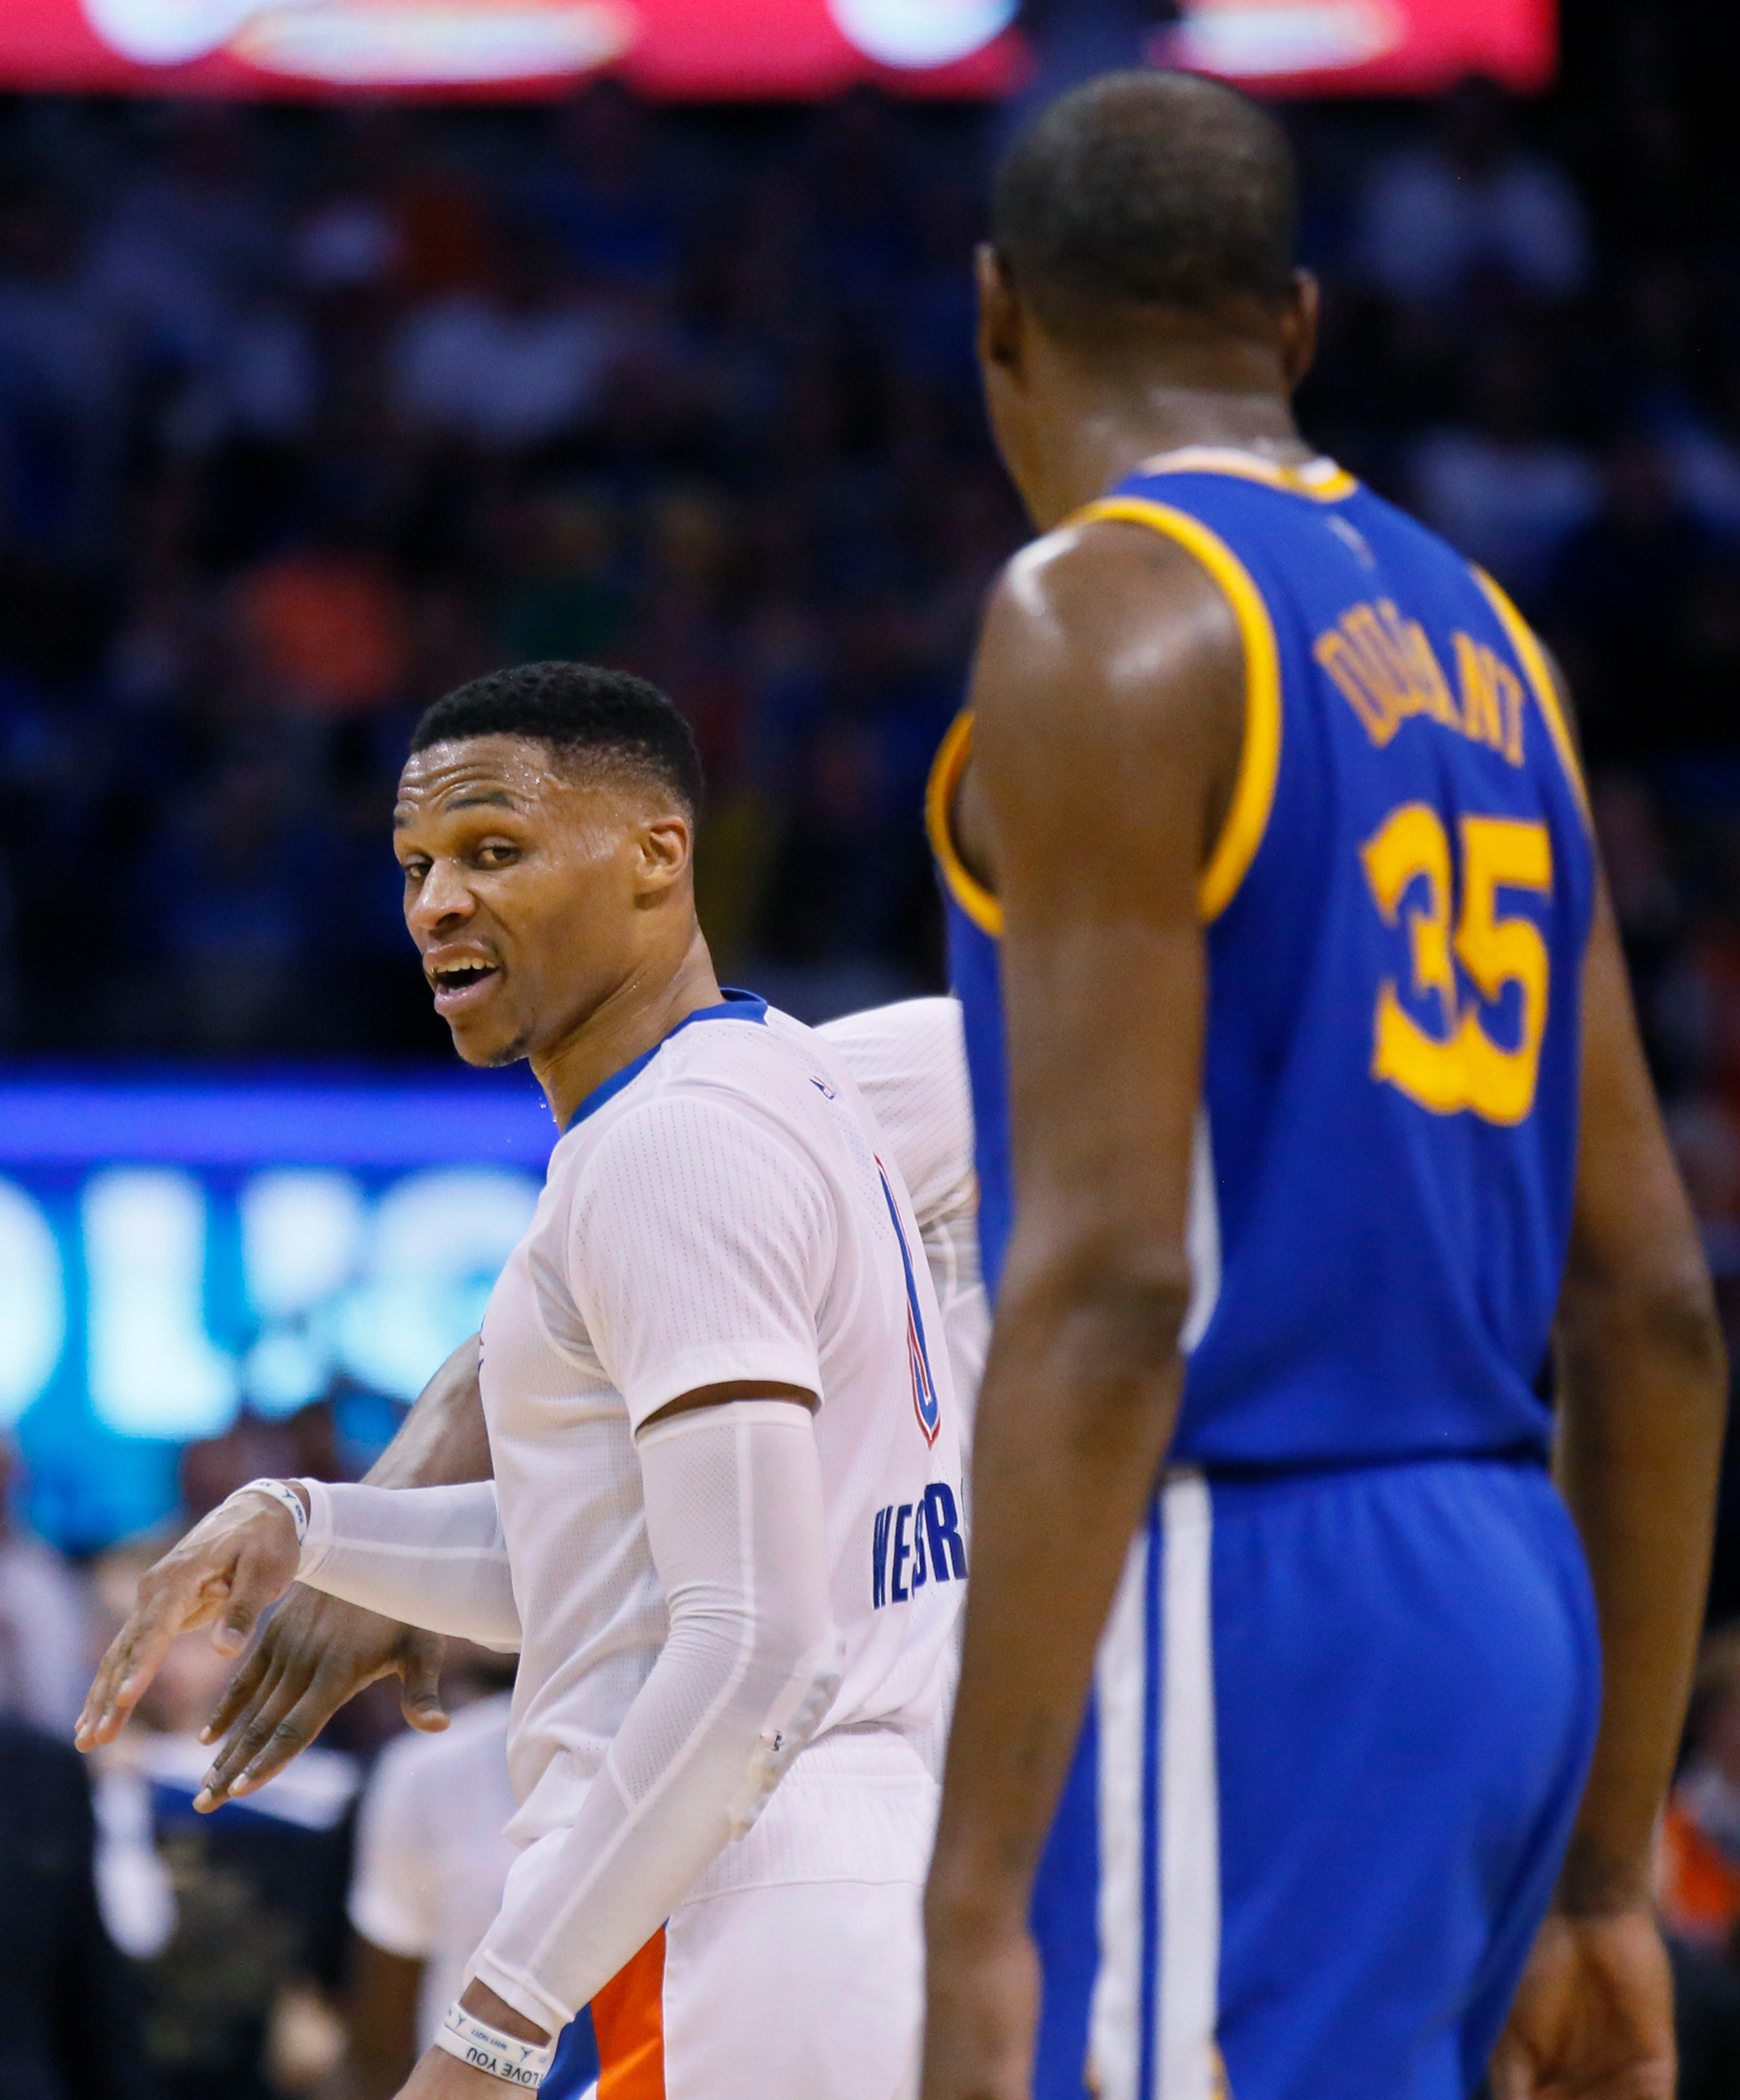 Oklahoma City Thunder guard Russell Westbrook, left, comments to Golden State Warriors forward Kevin Durant (35) as they walk offcourt for a timeout in the third quarter of an NBA basketball game in Oklahoma City, Saturday, Feb. 11, 2017.